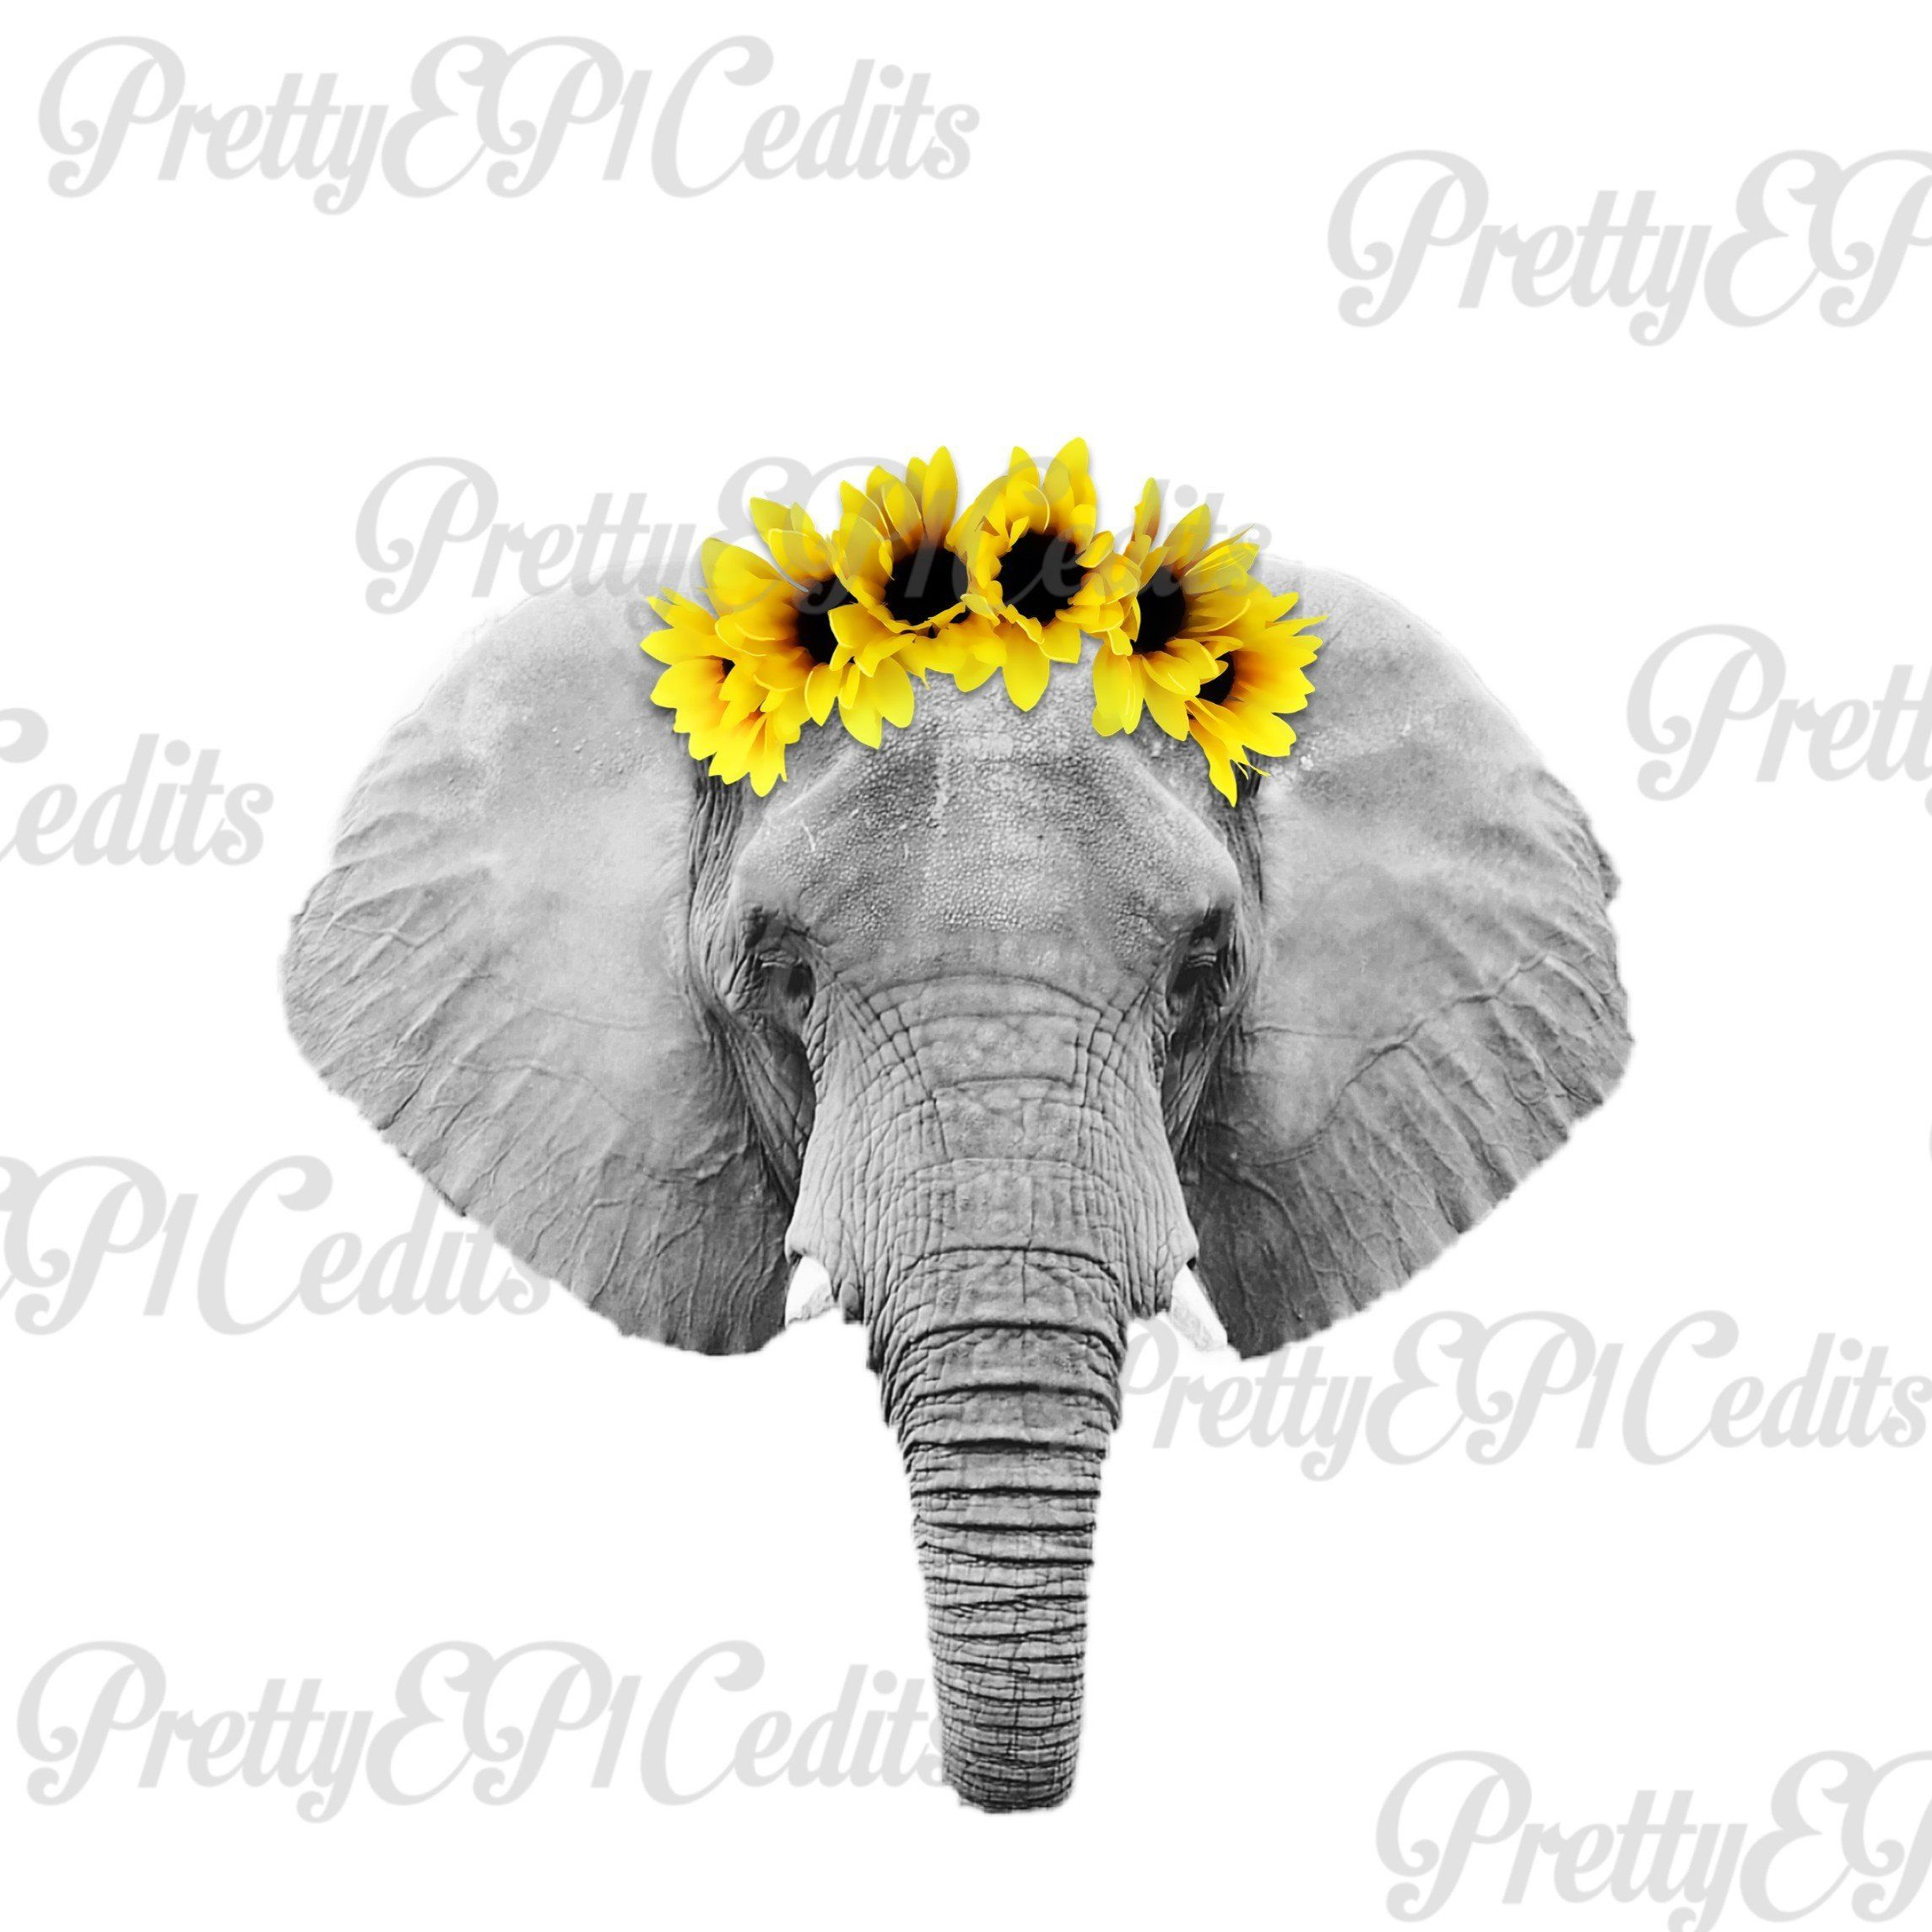 Elephant Sunflower Clip Art Png Digital Download Etsy Elephant Elephant Tattoo Small Elephant Art All png & cliparts images on nicepng are best quality. elephant sunflower clip art png digital